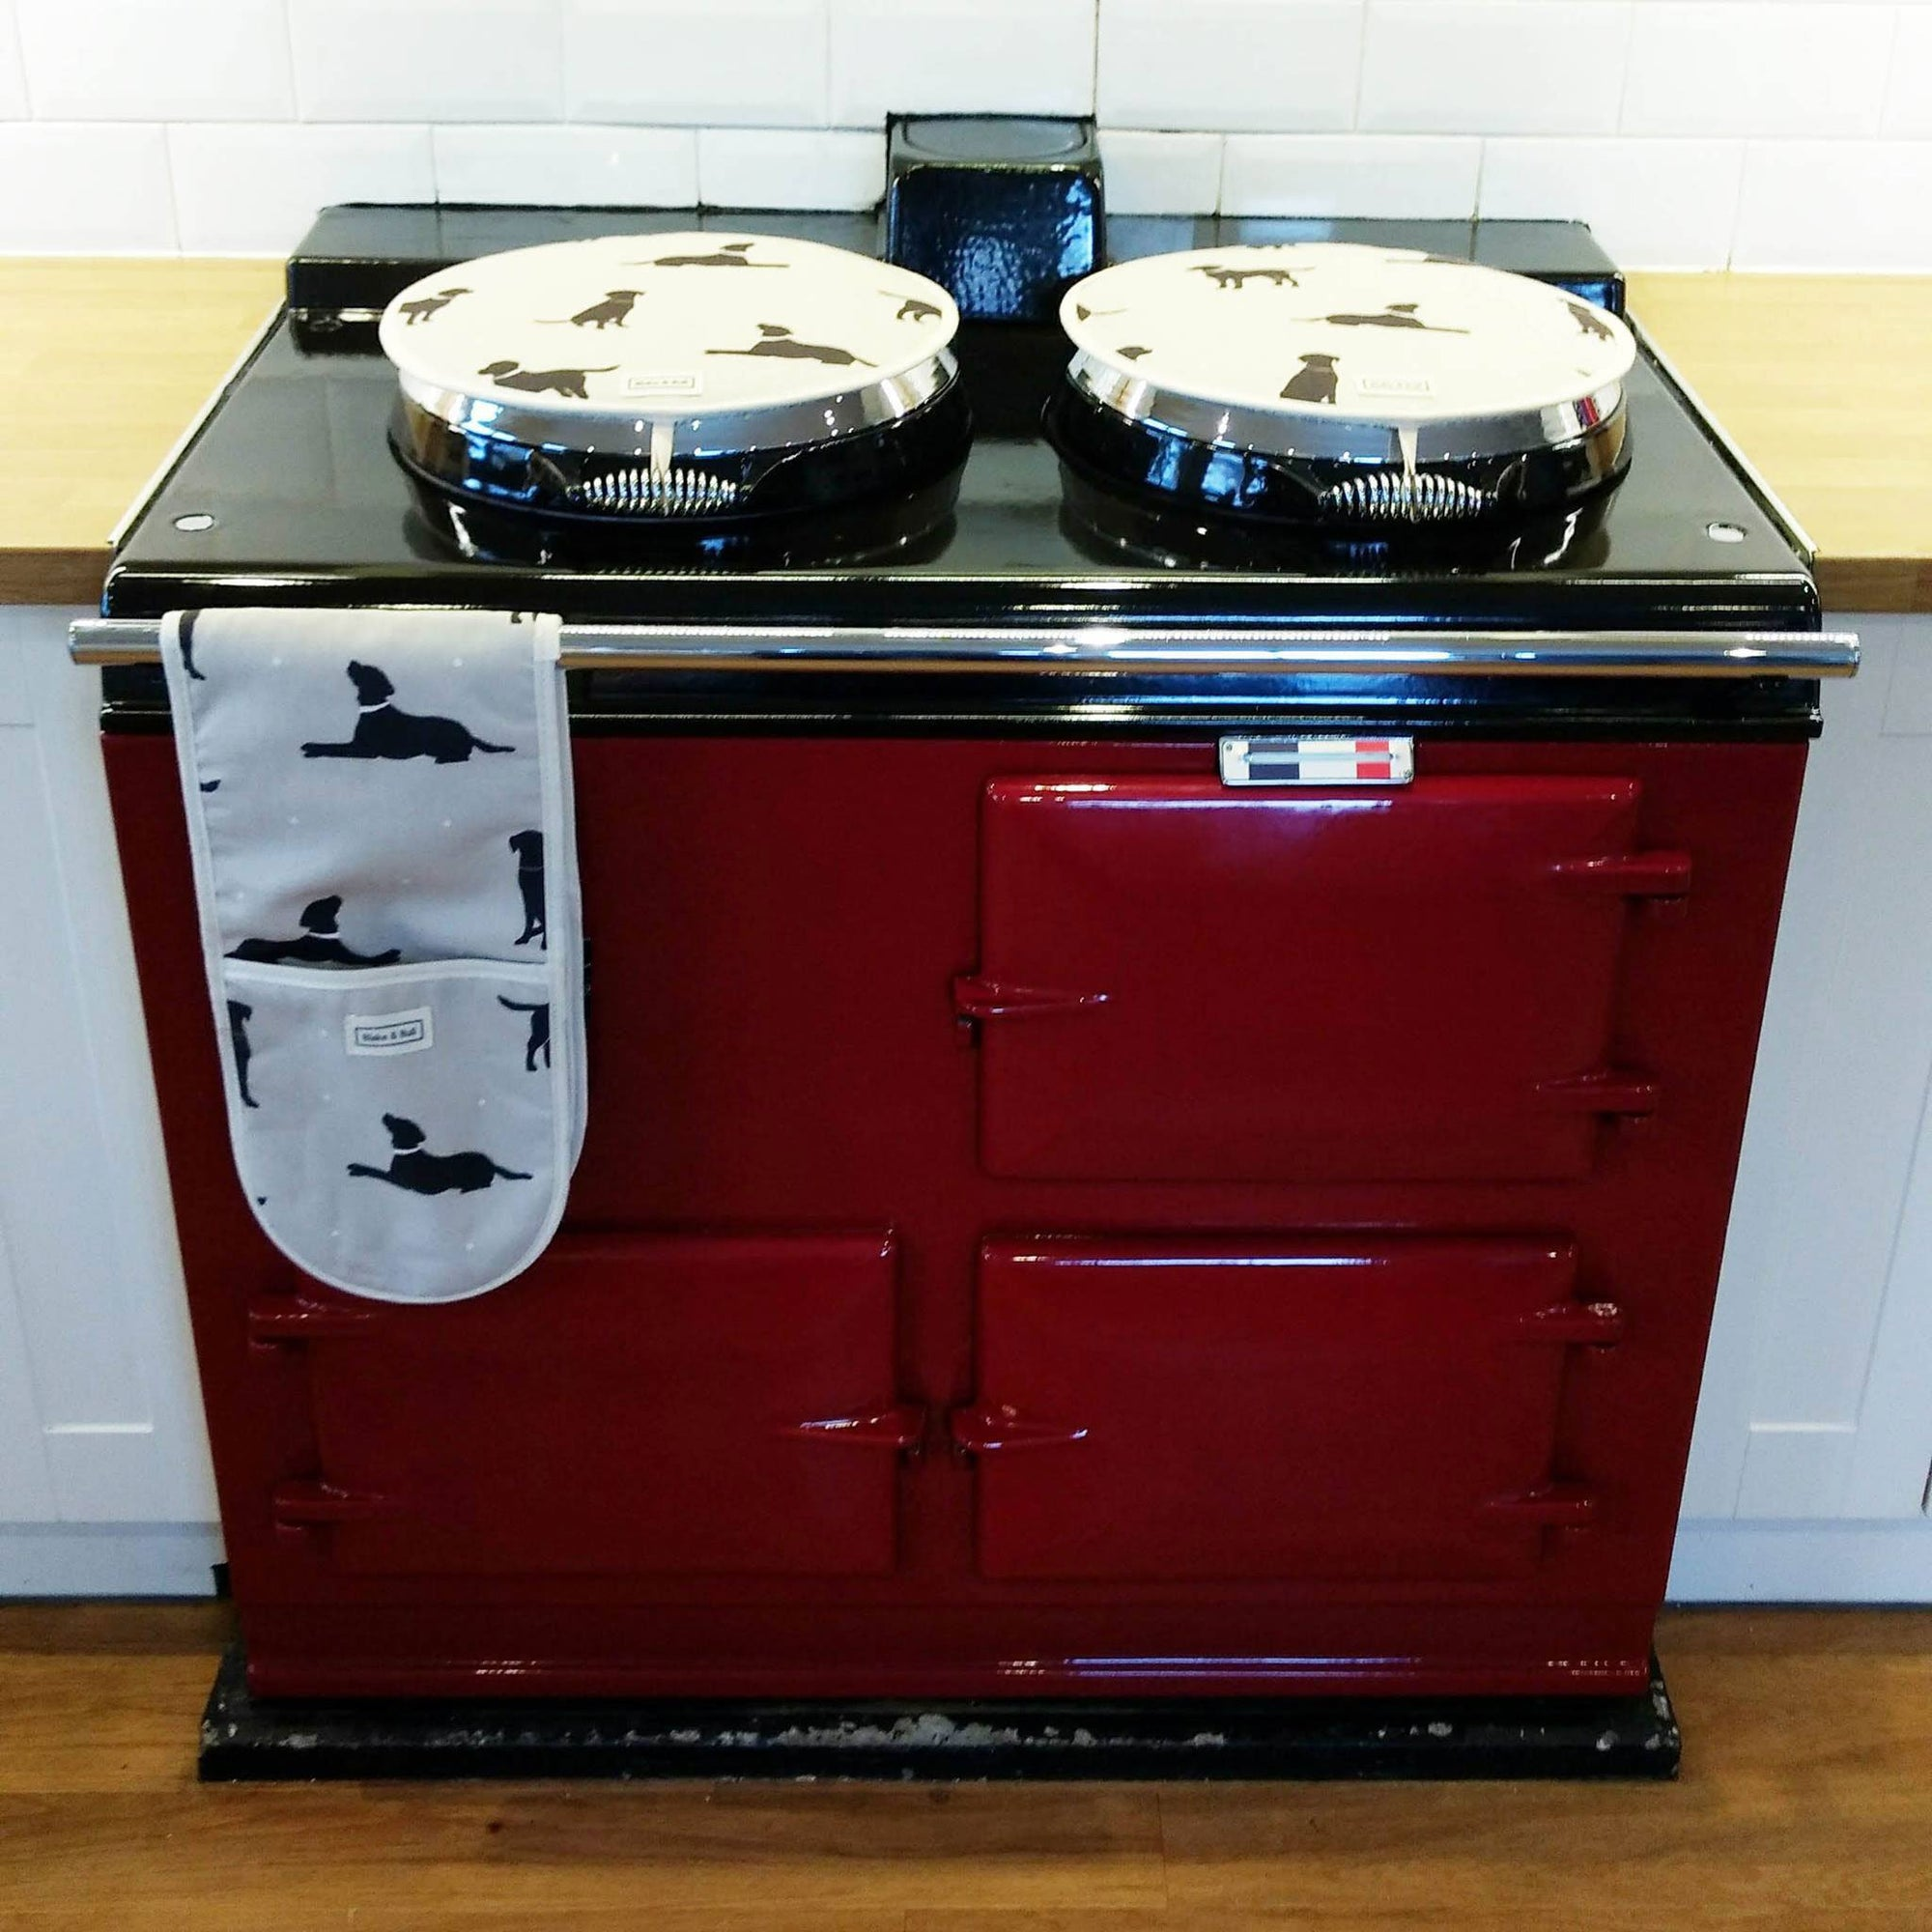 White solid fuel Aga range cooker re-enamelled